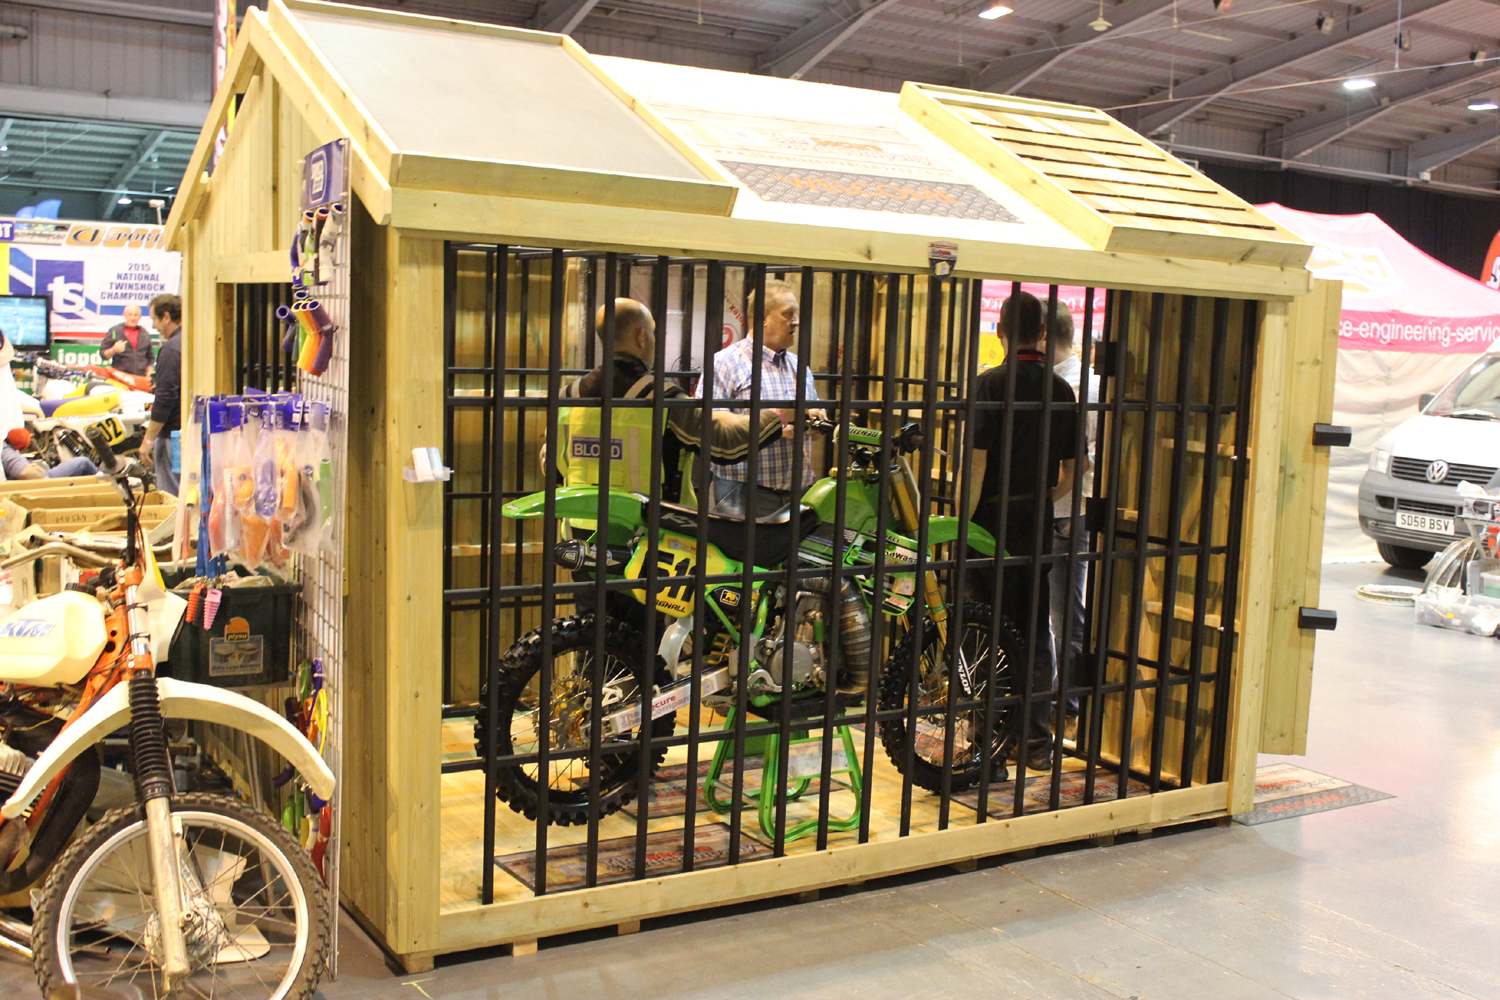 classicdirtbikerider.com-photo by Mr J-2015 Telford classic dirt bike show-THE LATEST THING IN OFF ROAD BIKE SECURITY